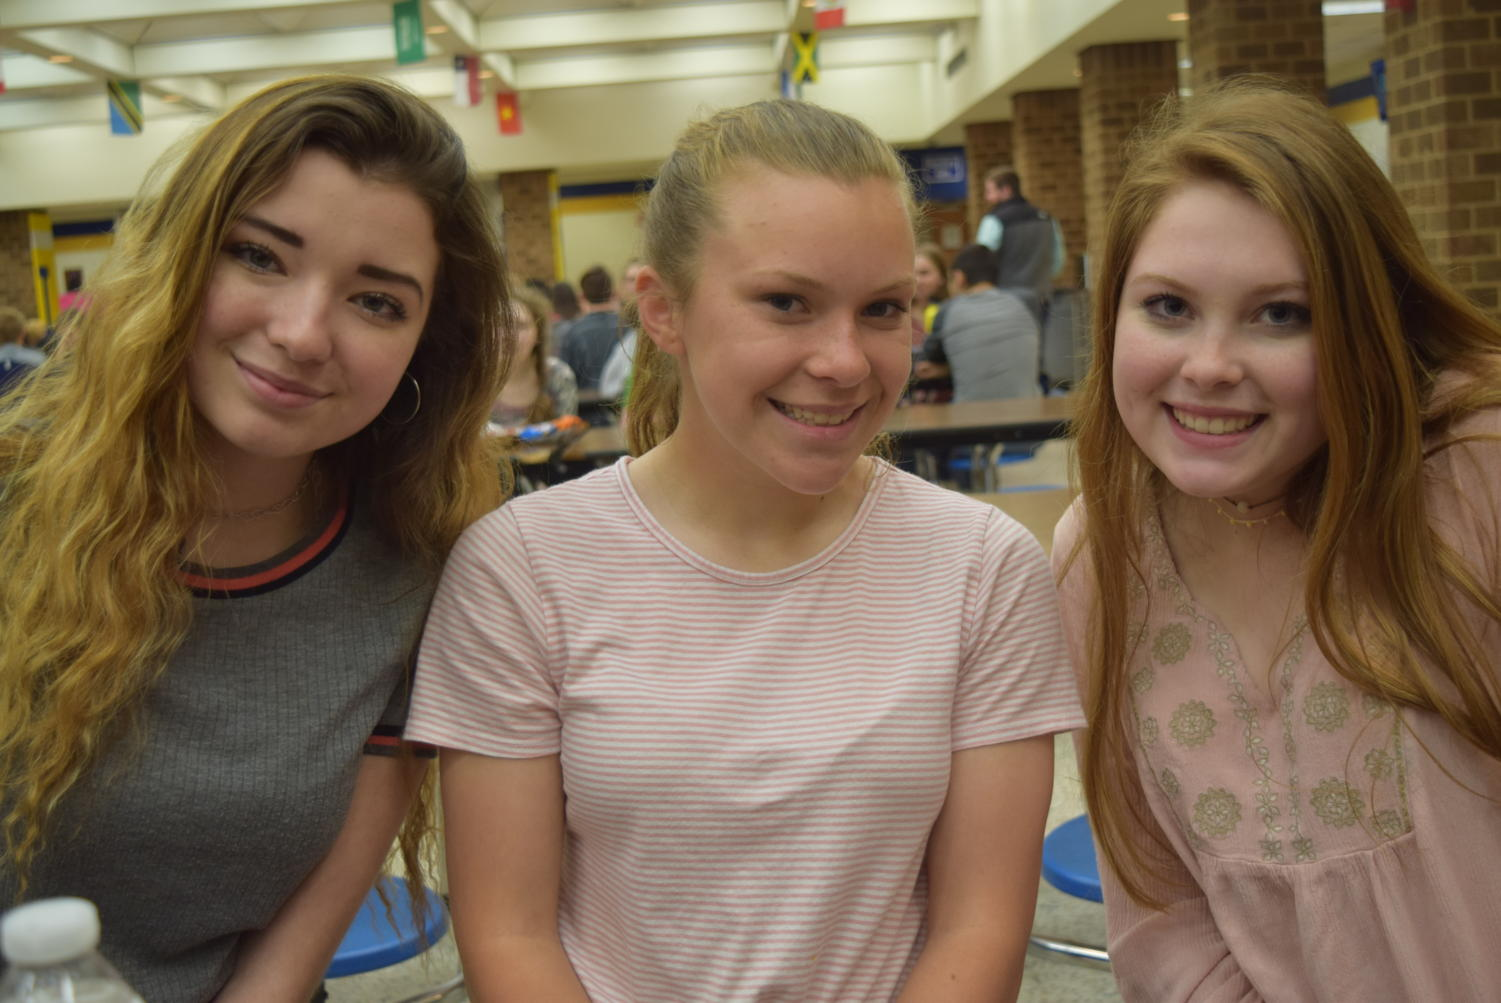 Freshmen Emily Vanlandingham, Madison Salzman, and Emily Peterson enjoy lunch together.